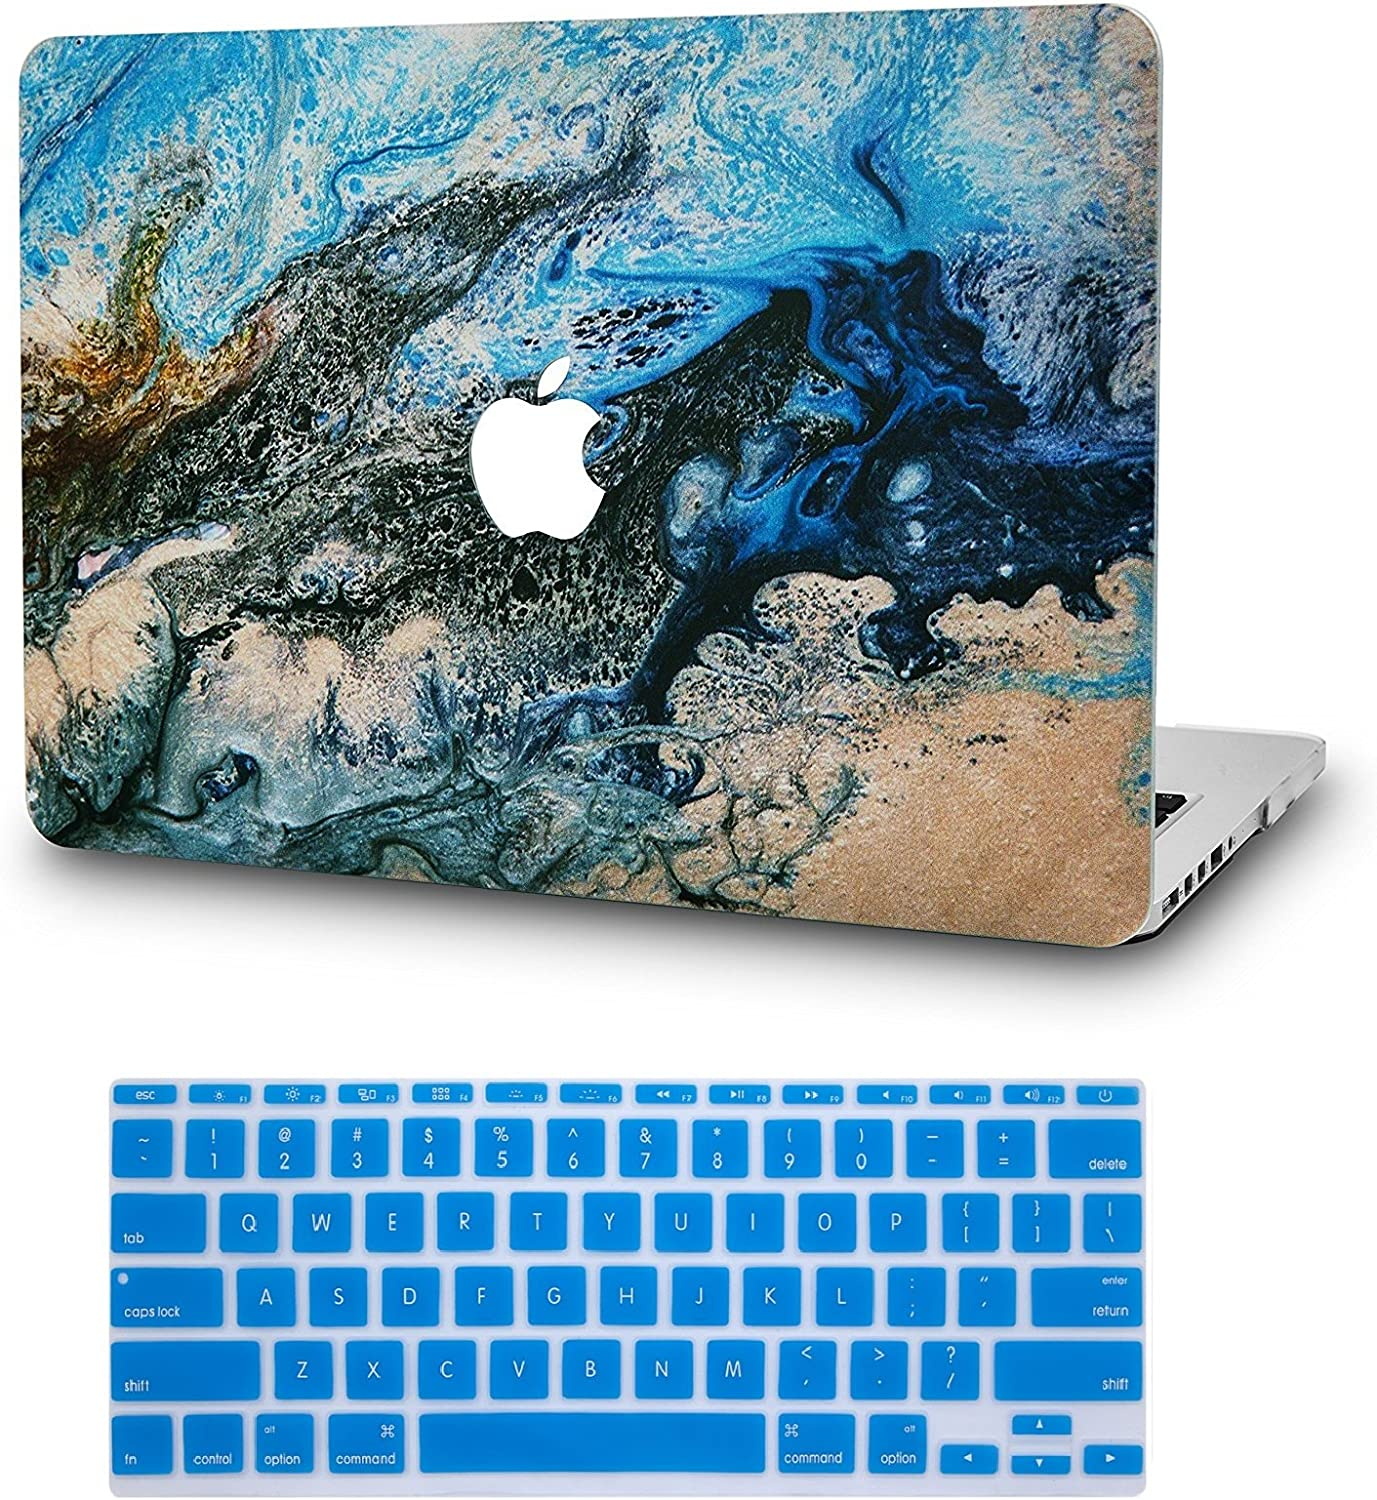 """KECC Laptop Case for MacBook Pro 13"""" (2020/2019/2018/2017/2016) w/Keyboard Cover Plastic Hard Shell A2159/A1989/A1706/A1708 Touch Bar 2 in 1 Bundle (Sea)"""